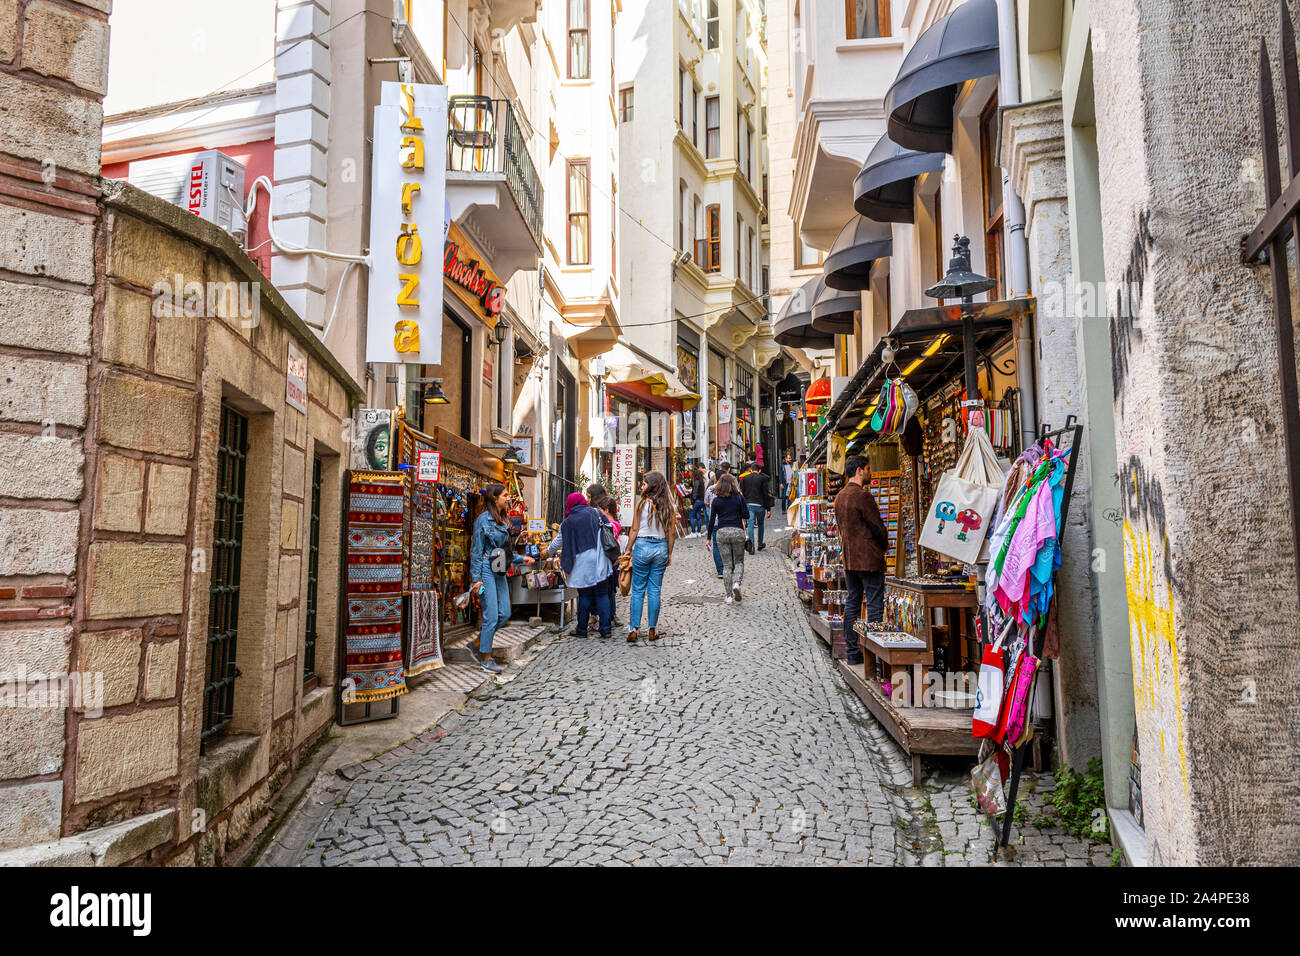 Local Turks including a group of younger girls go shopping on a colorful hilly street in the Galata Karakoy district of Istanbul, Turkey Stock Photo